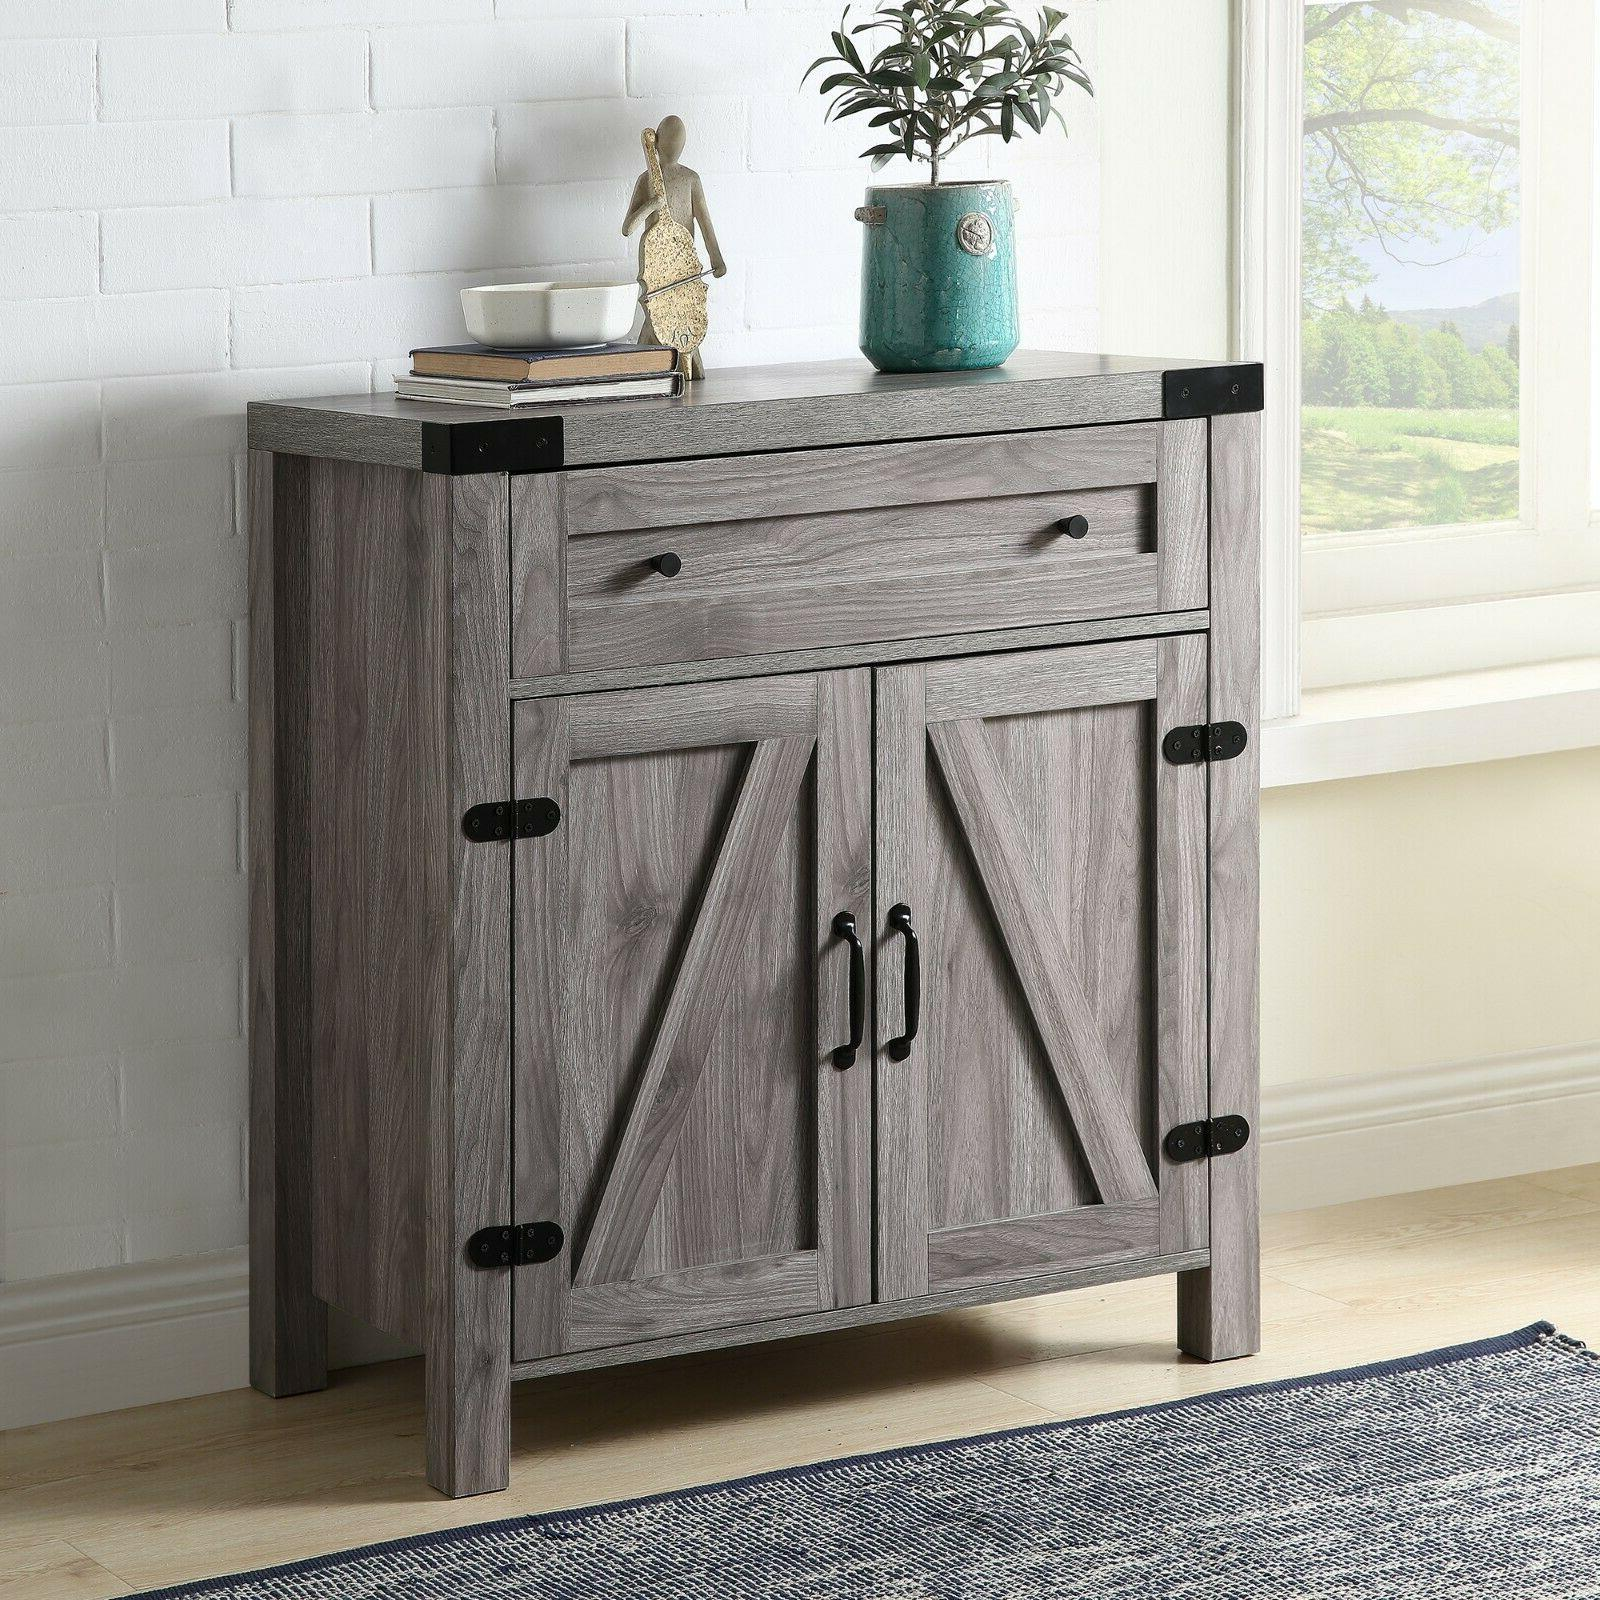 rustic console table vintage side table retro